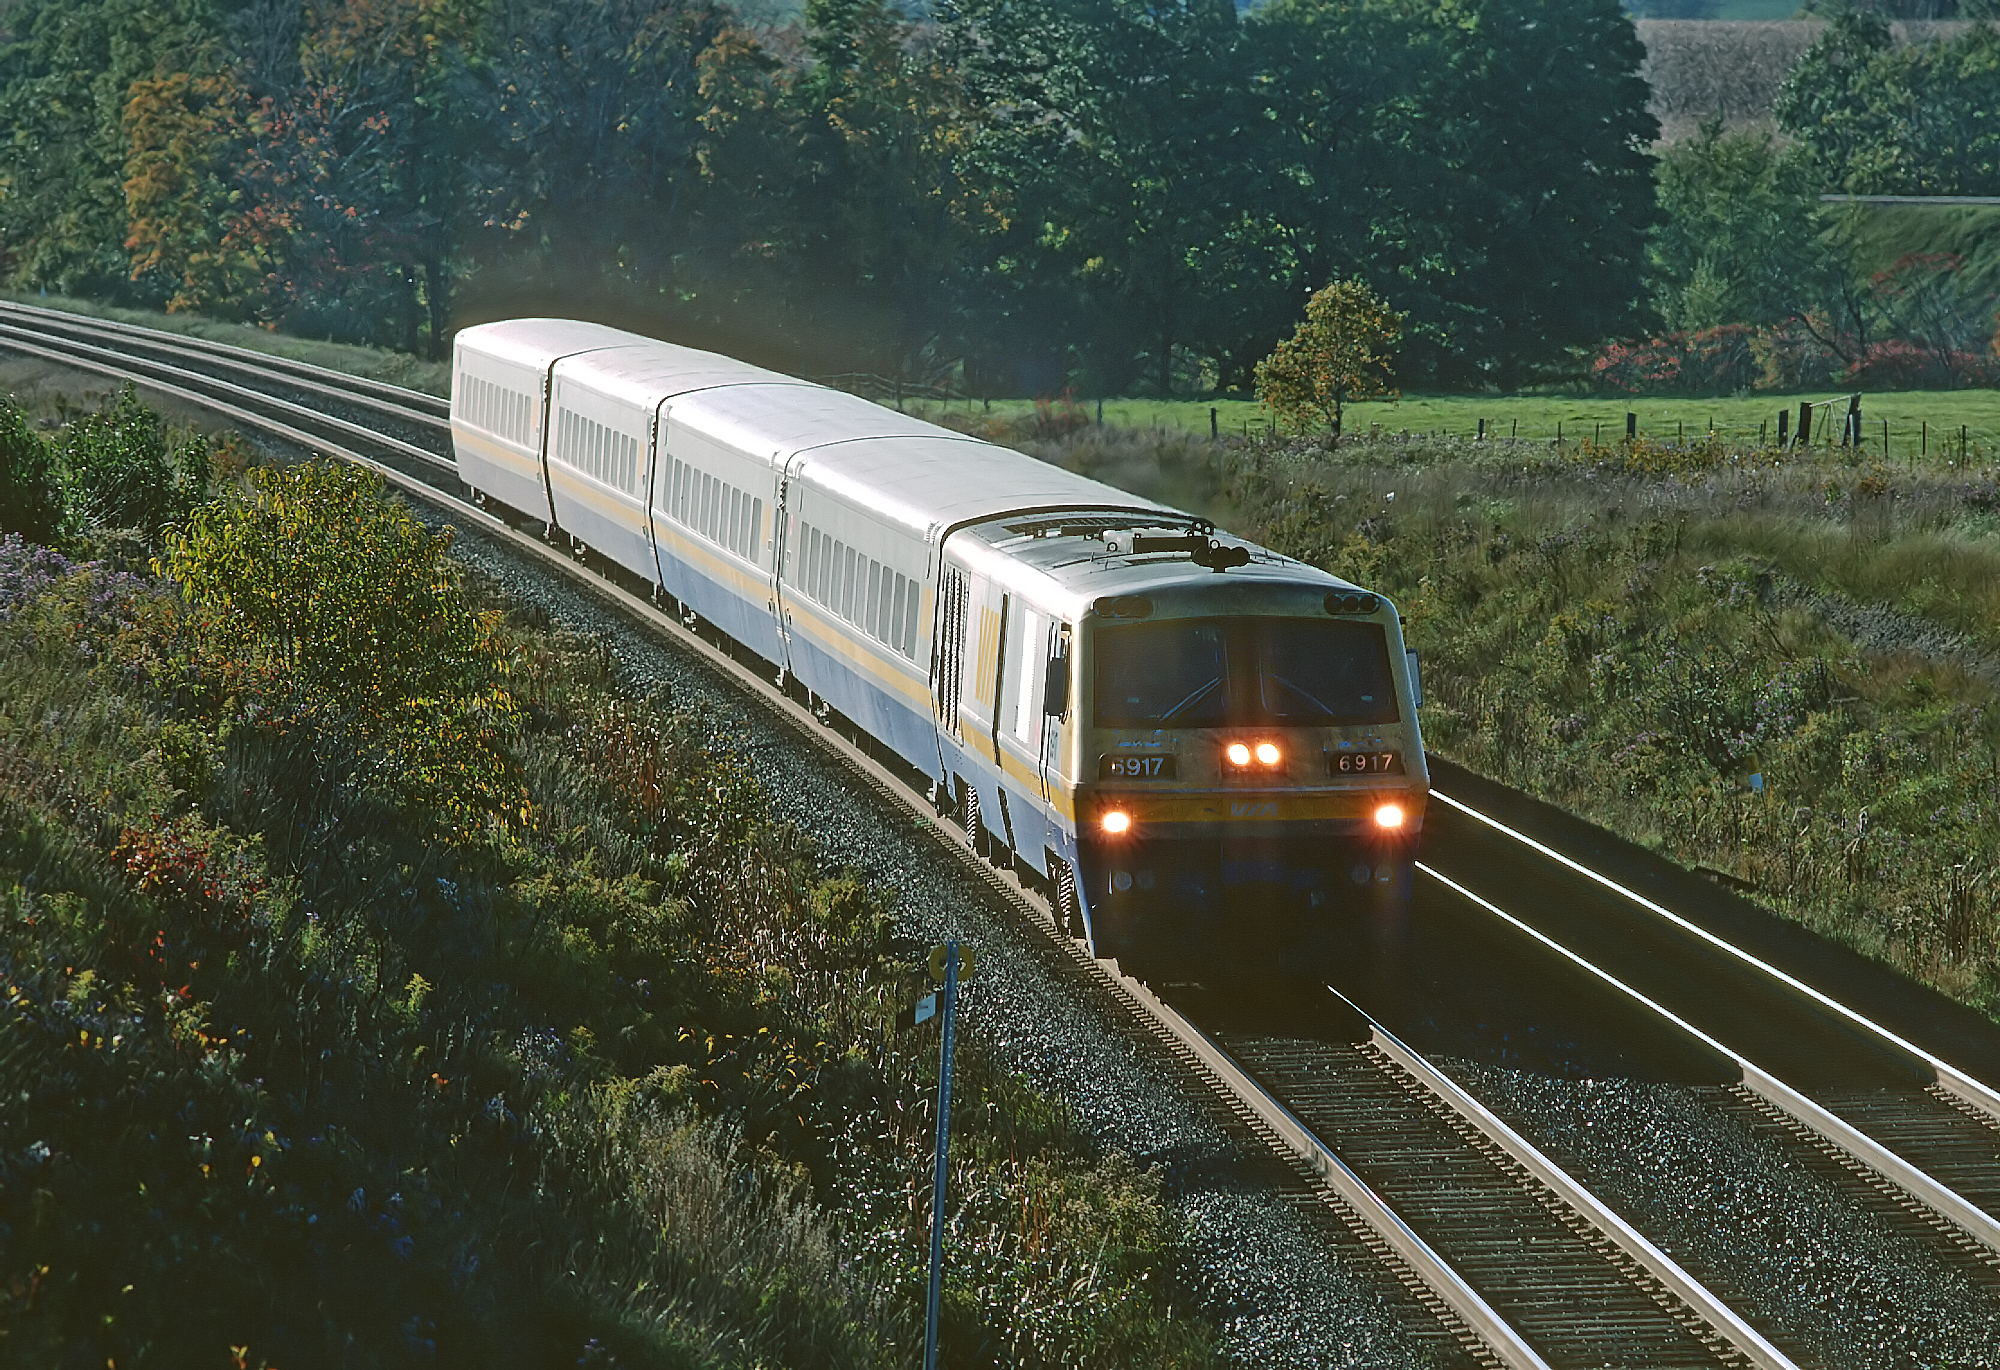 An LRC locomotive, manufactured by Bombardier Transportation. Image via Bombardier Transportation